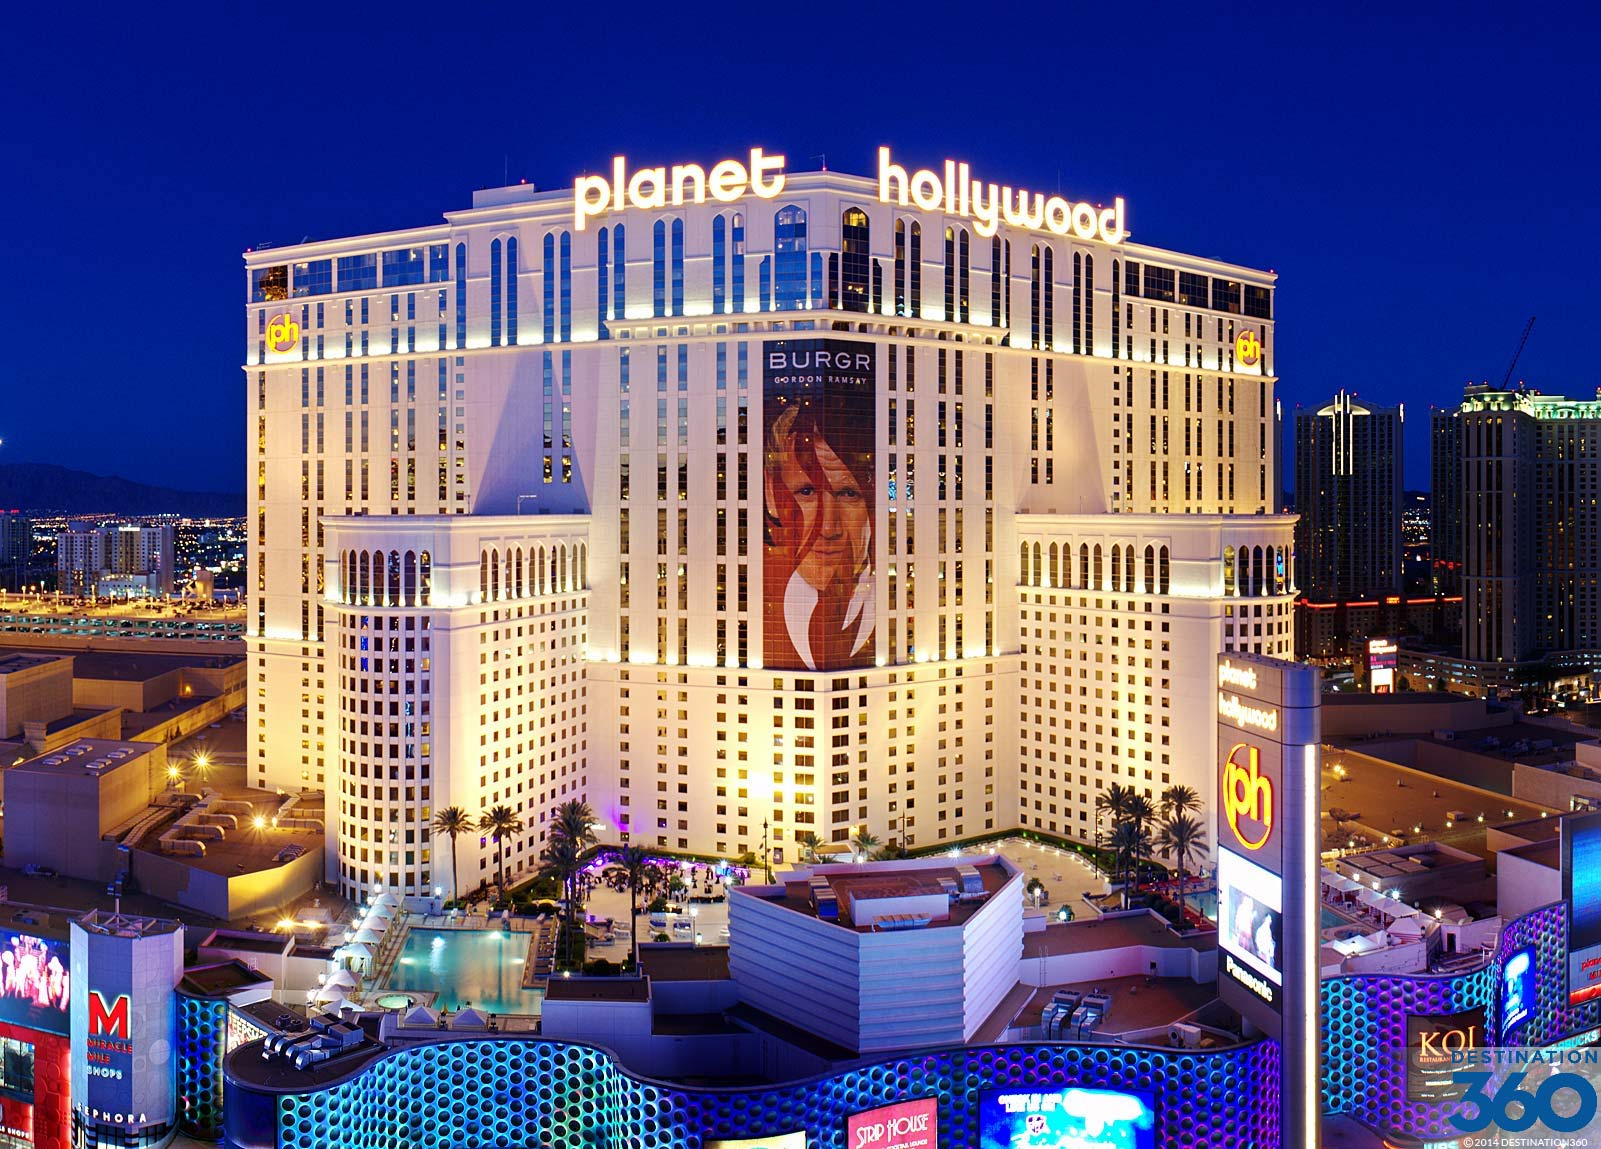 Planet hollywood resort and casino deals state line casino finder